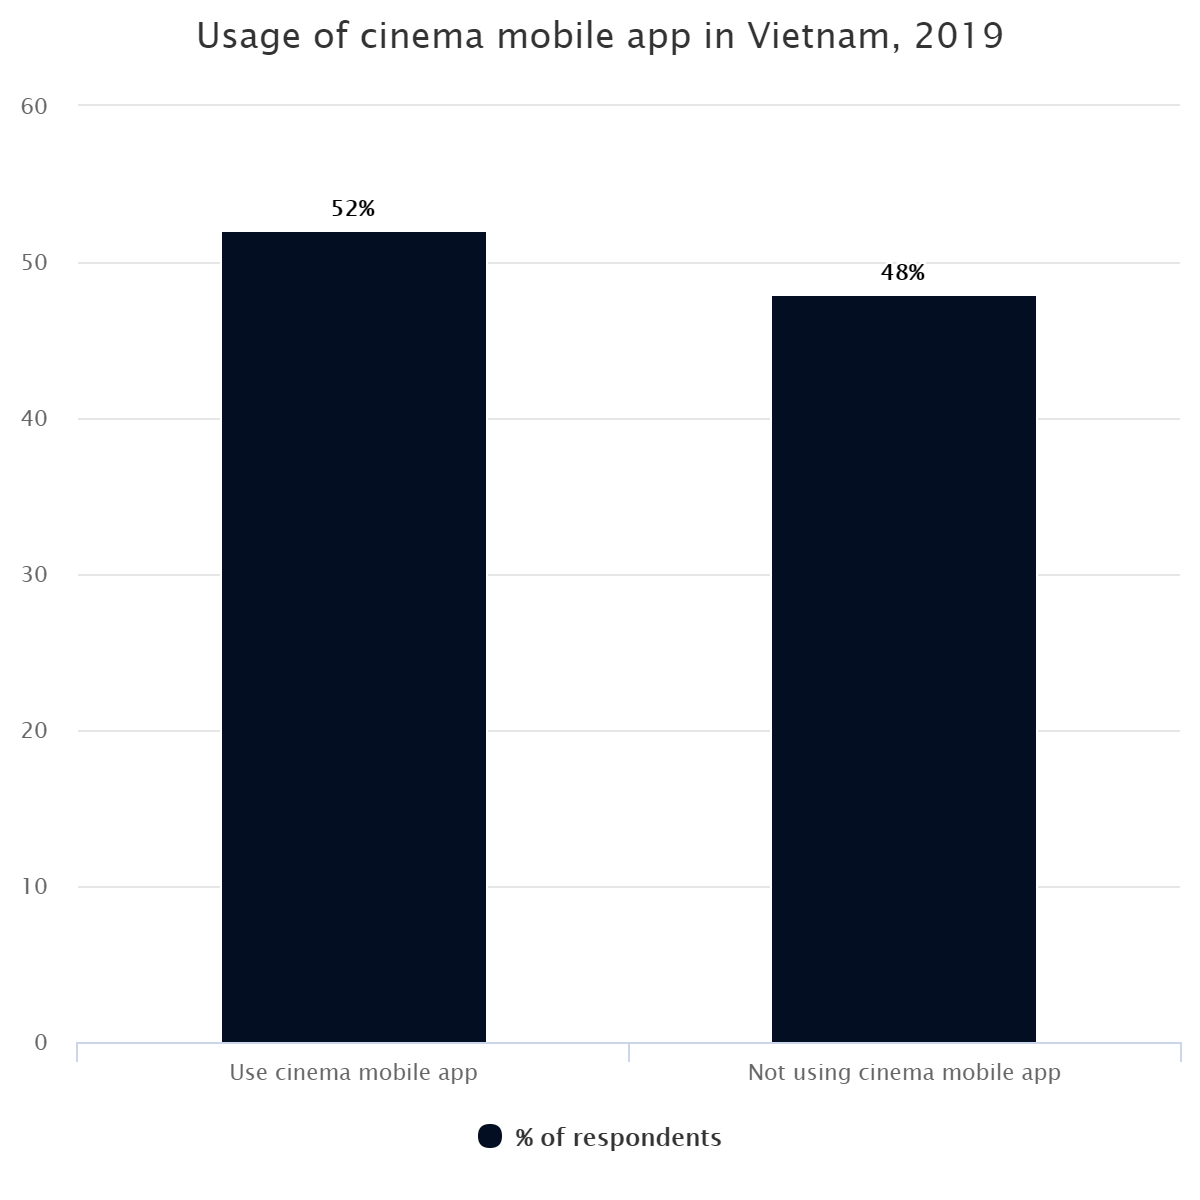 Usage of cinema mobile app in Vietnam, 2019